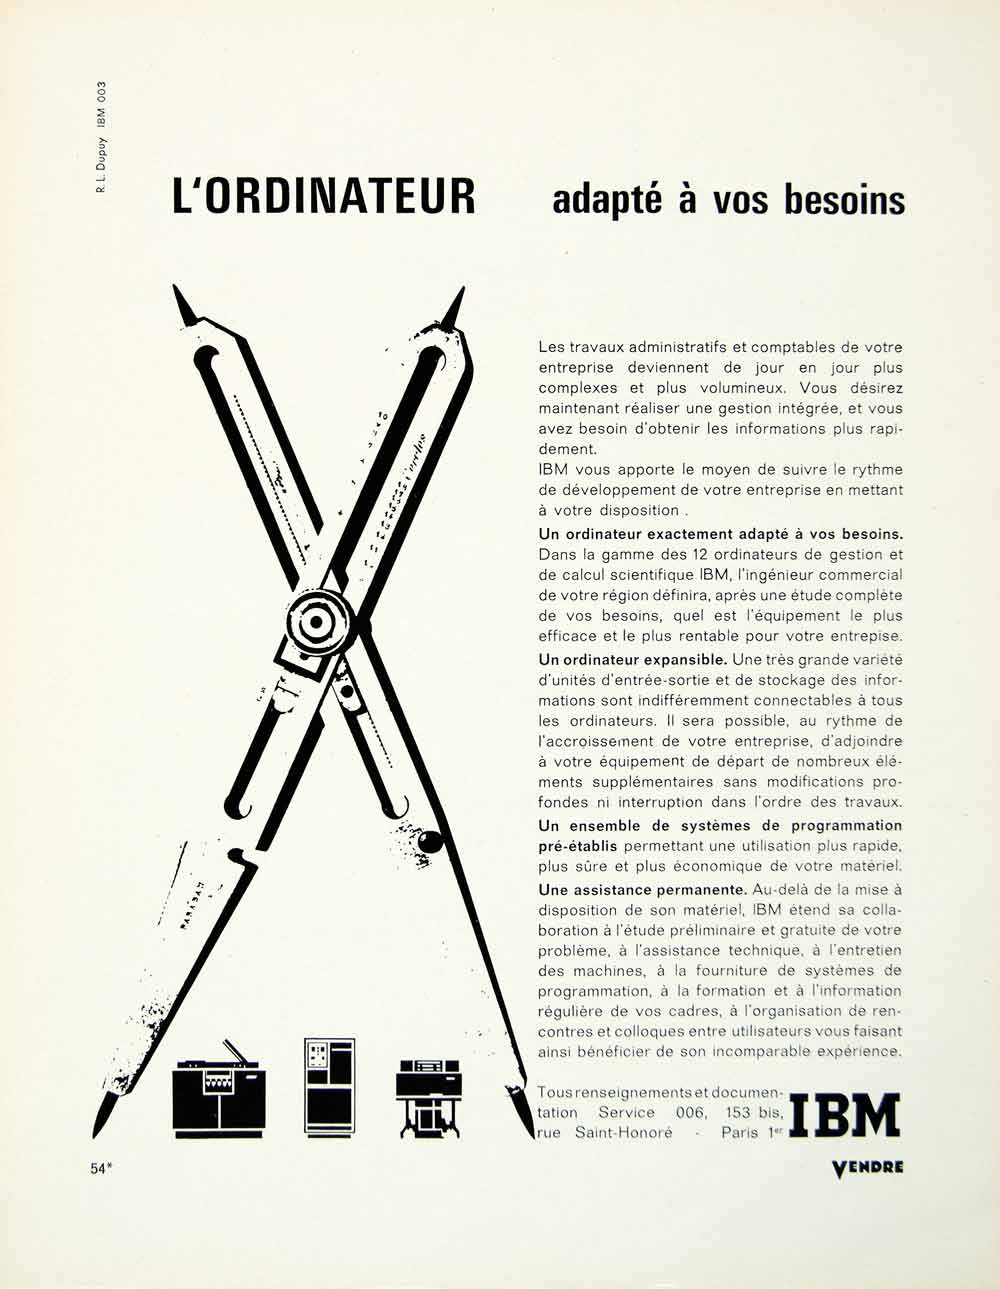 1963 Ad French IBM Computer Ordinateur International Business Machines VENA1